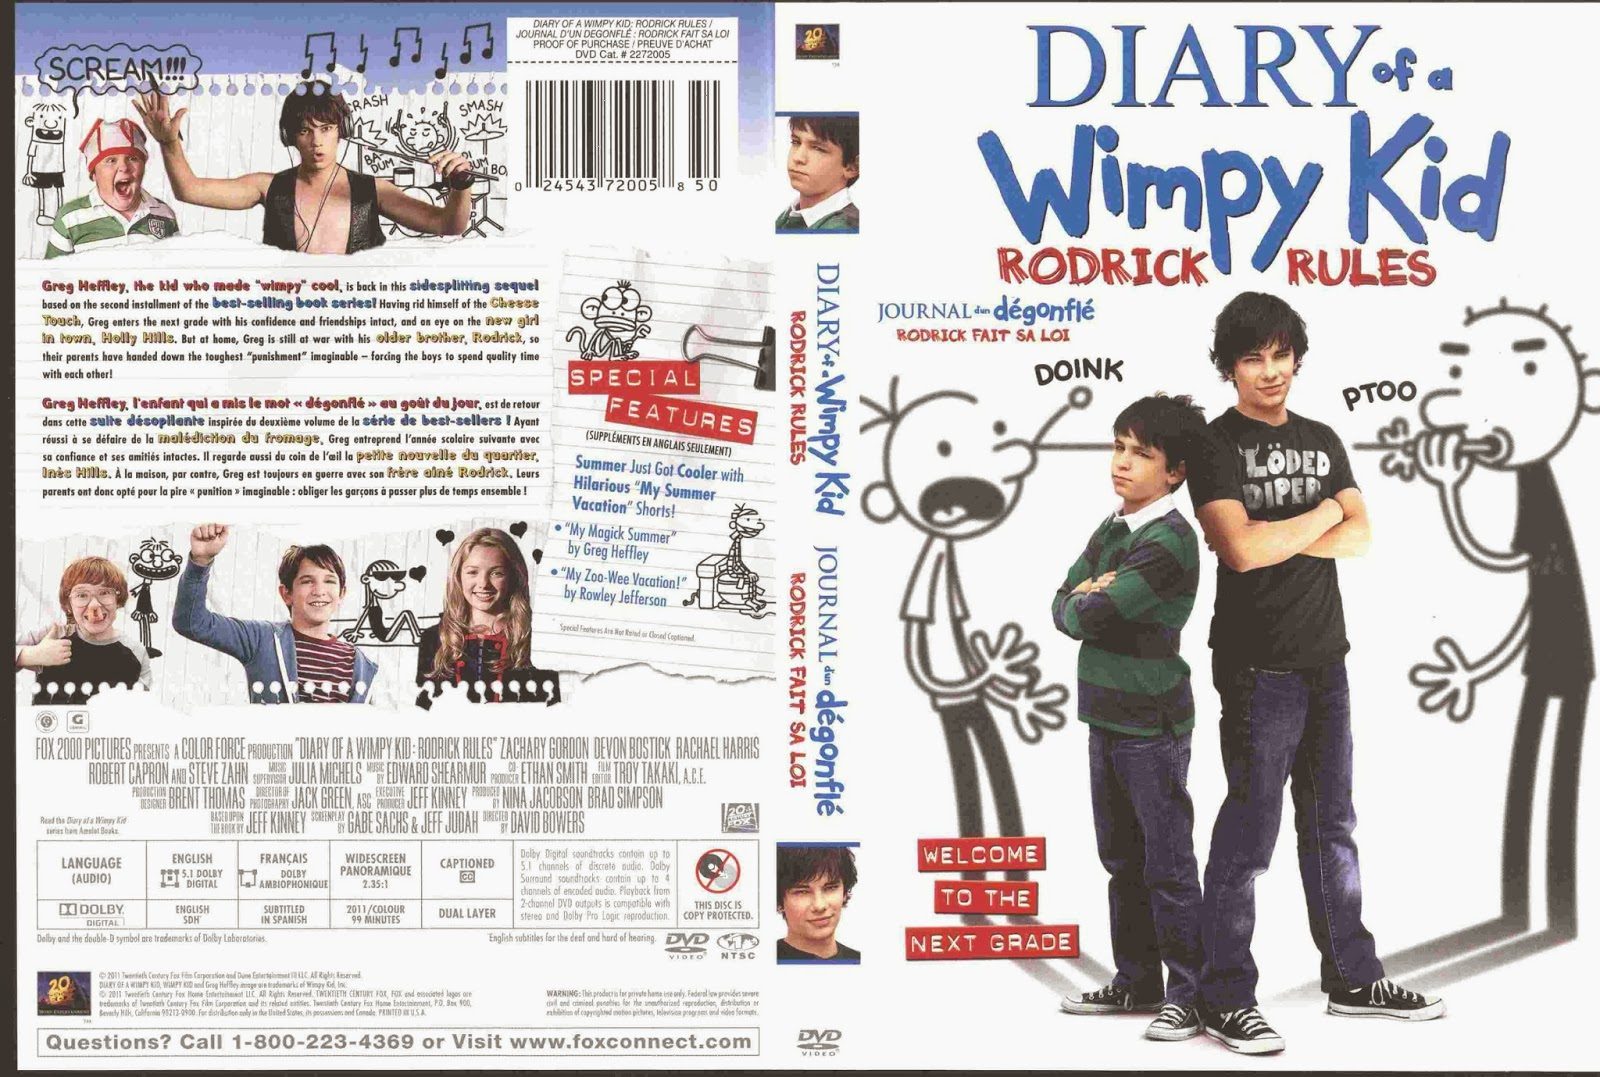 diary-of-a-wimpy-kid-characters-patty